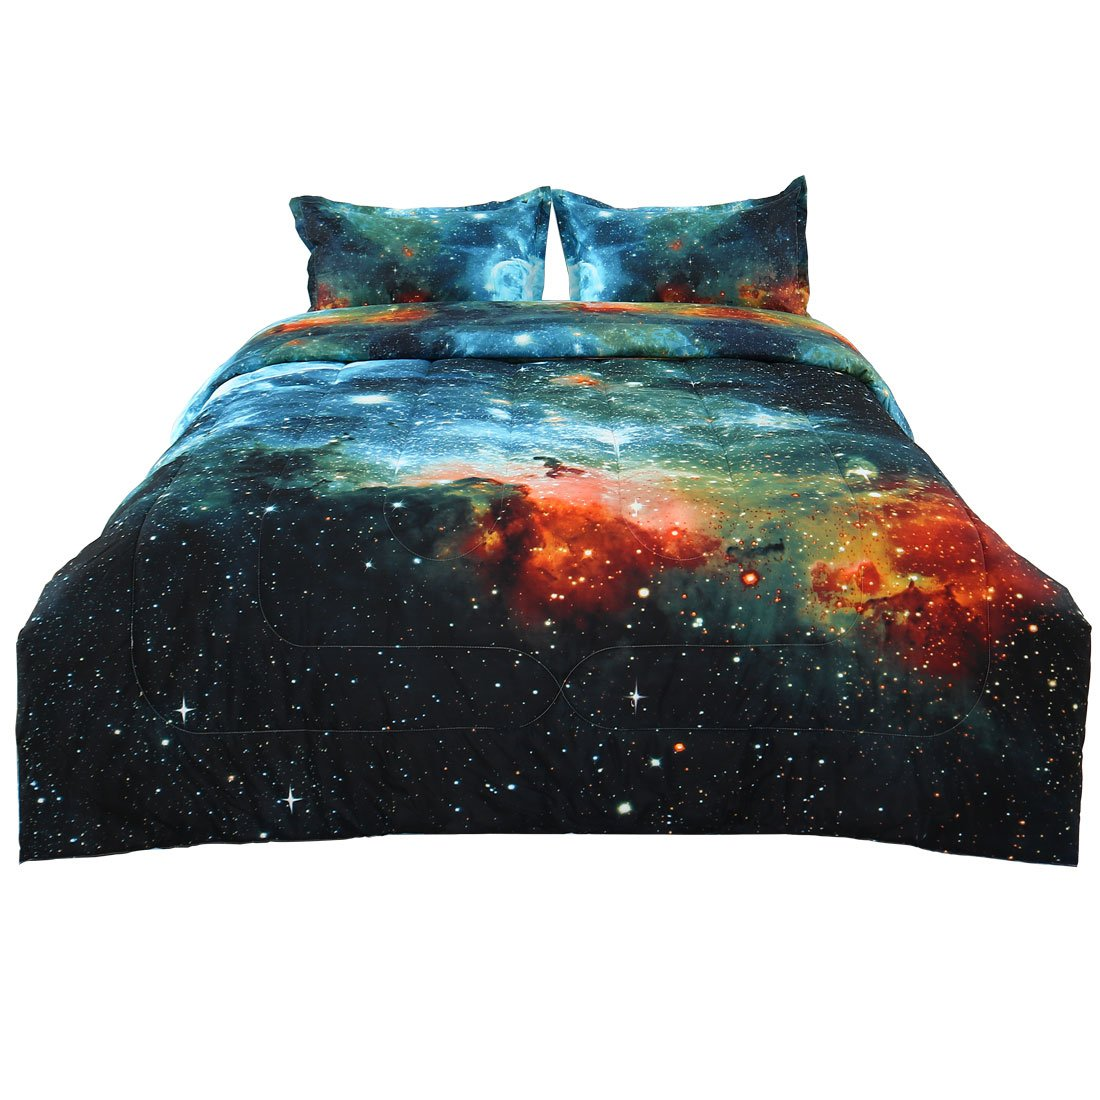 uxcell Full/Queen 3-Piece Galaxies Blue Comforter Sets - 3D Printed Space Themed - All-Season Down Alternative Quilted Duvet - Reversible Design - Includes 1 Comforter, 2 Pillow Shams